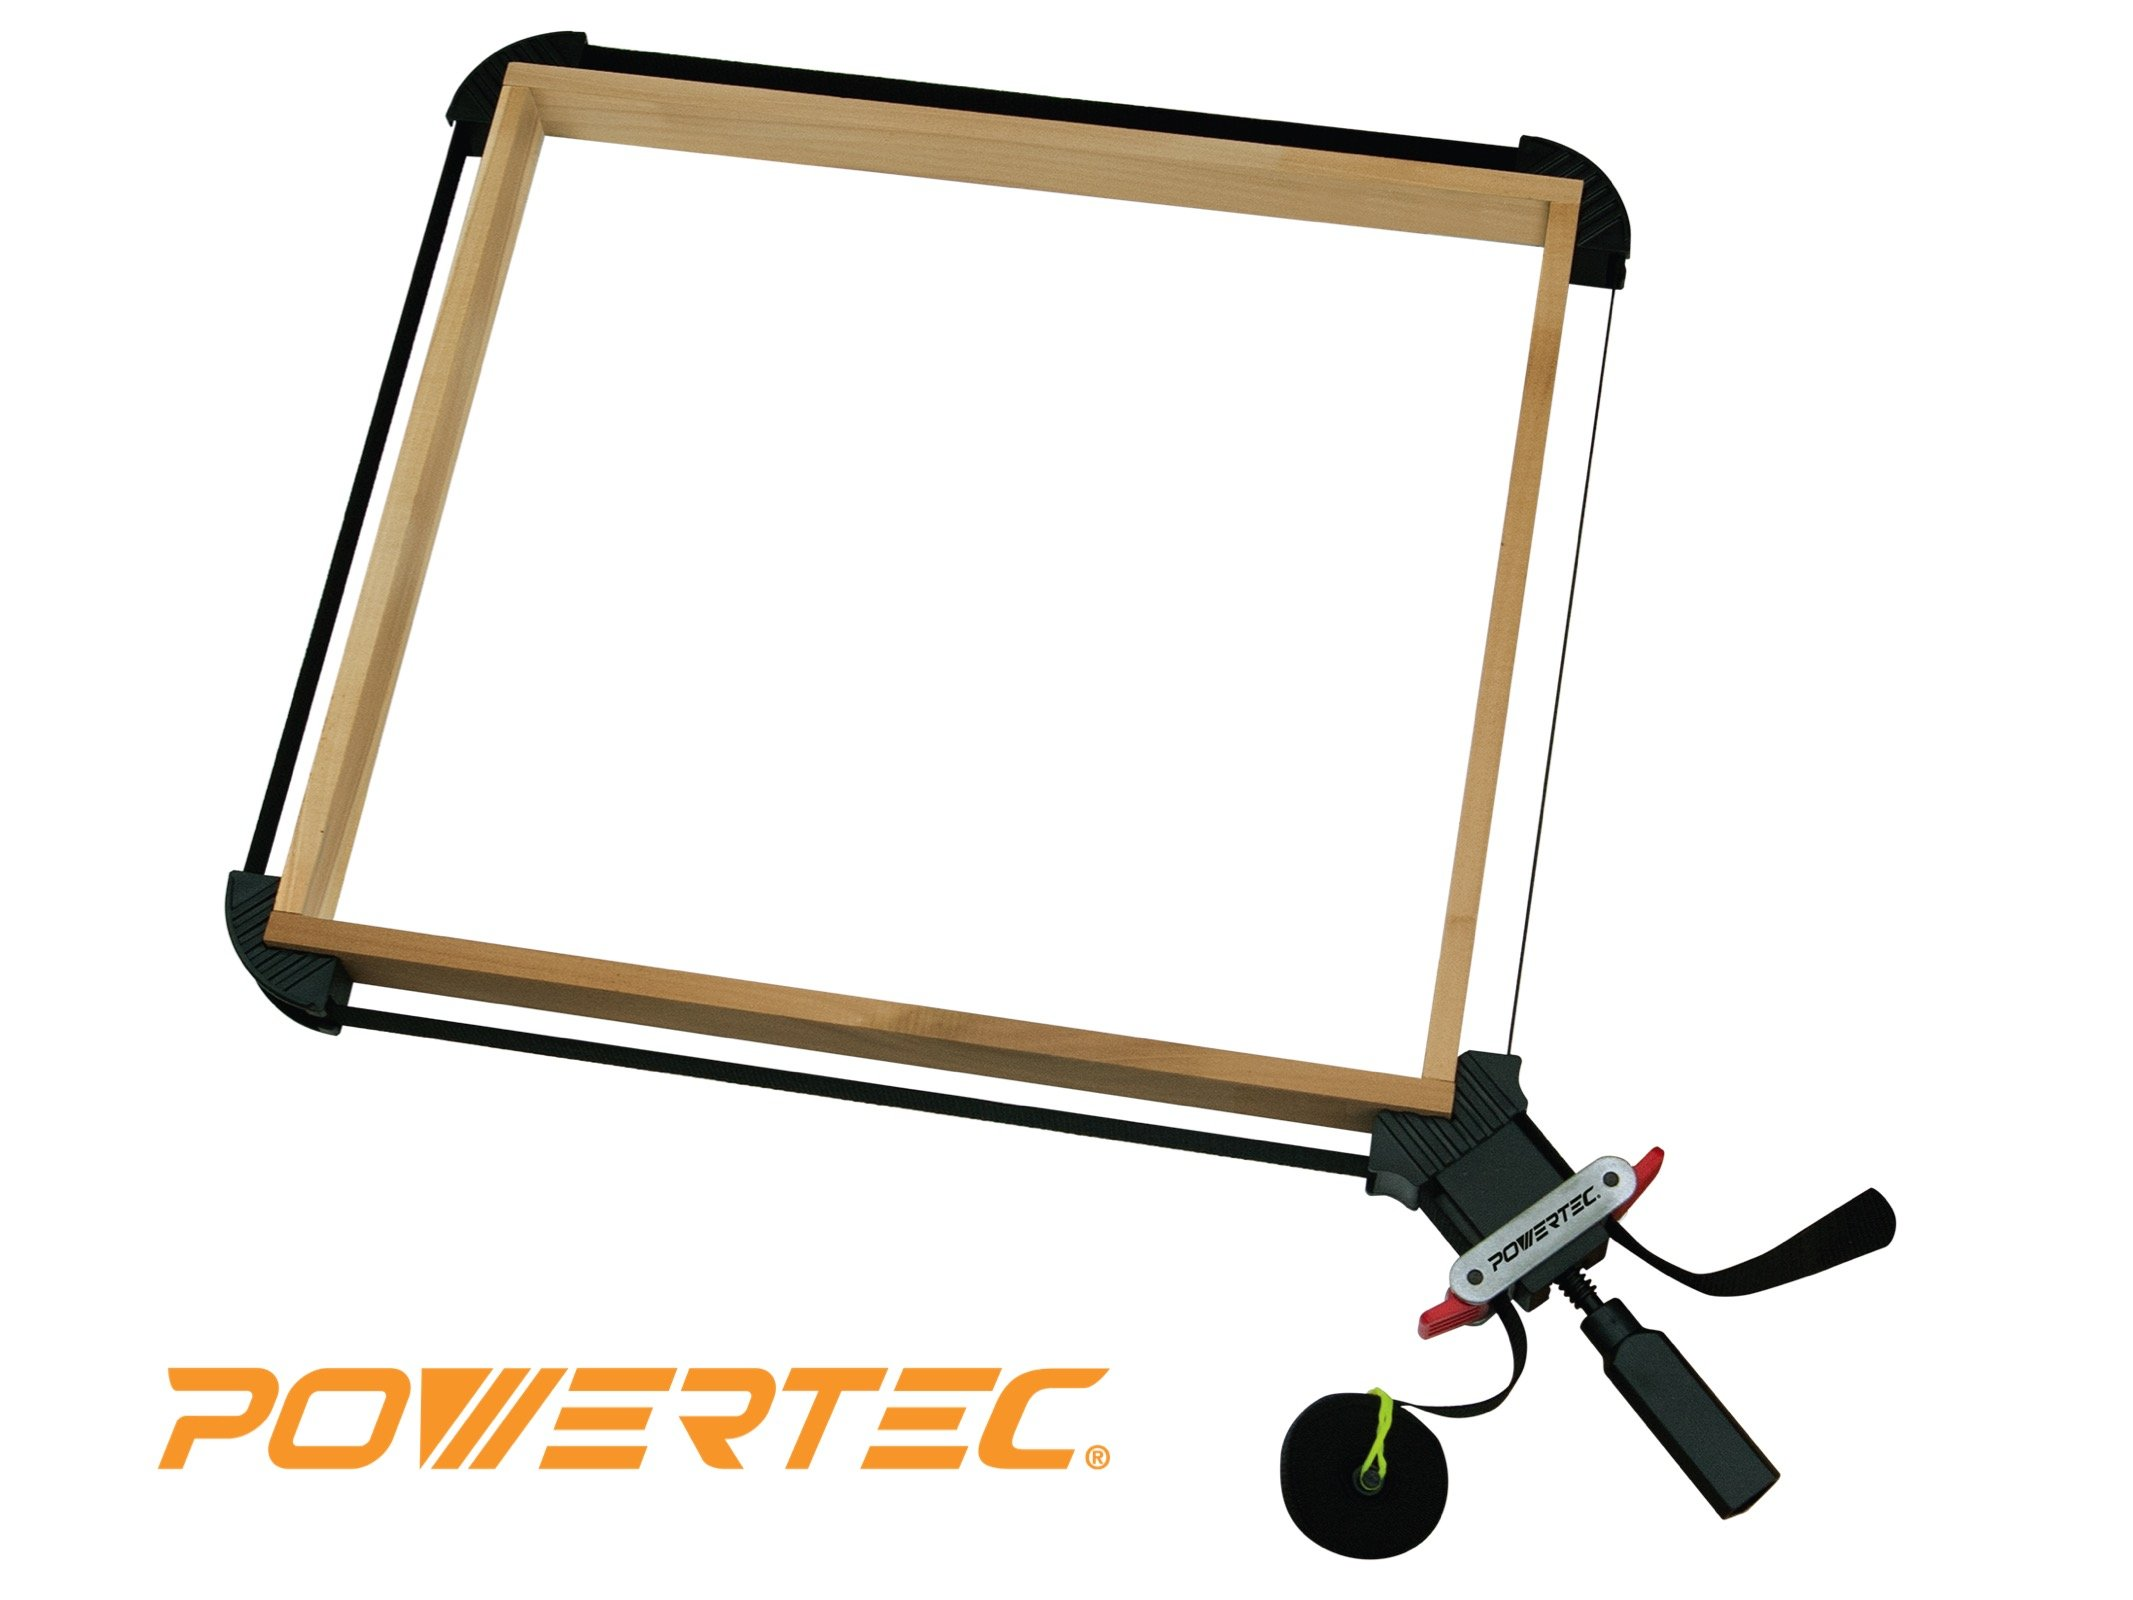 POWERTEC 71017 Band Clamp with Quick-Release Levers